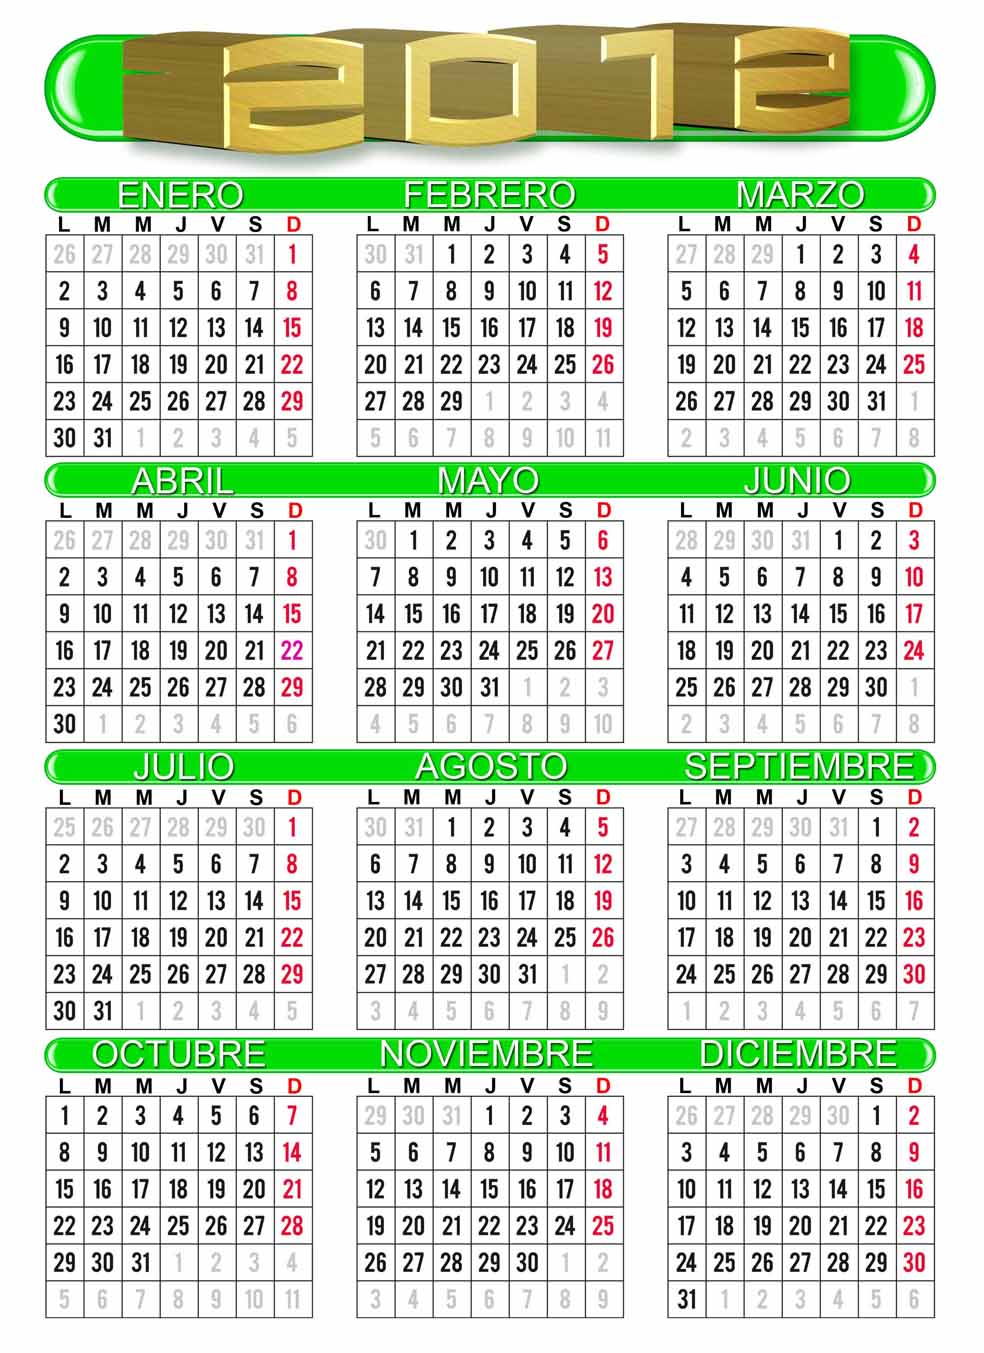 Calendario 2012 para guardar e imprimir im genes for Horario peru wellness